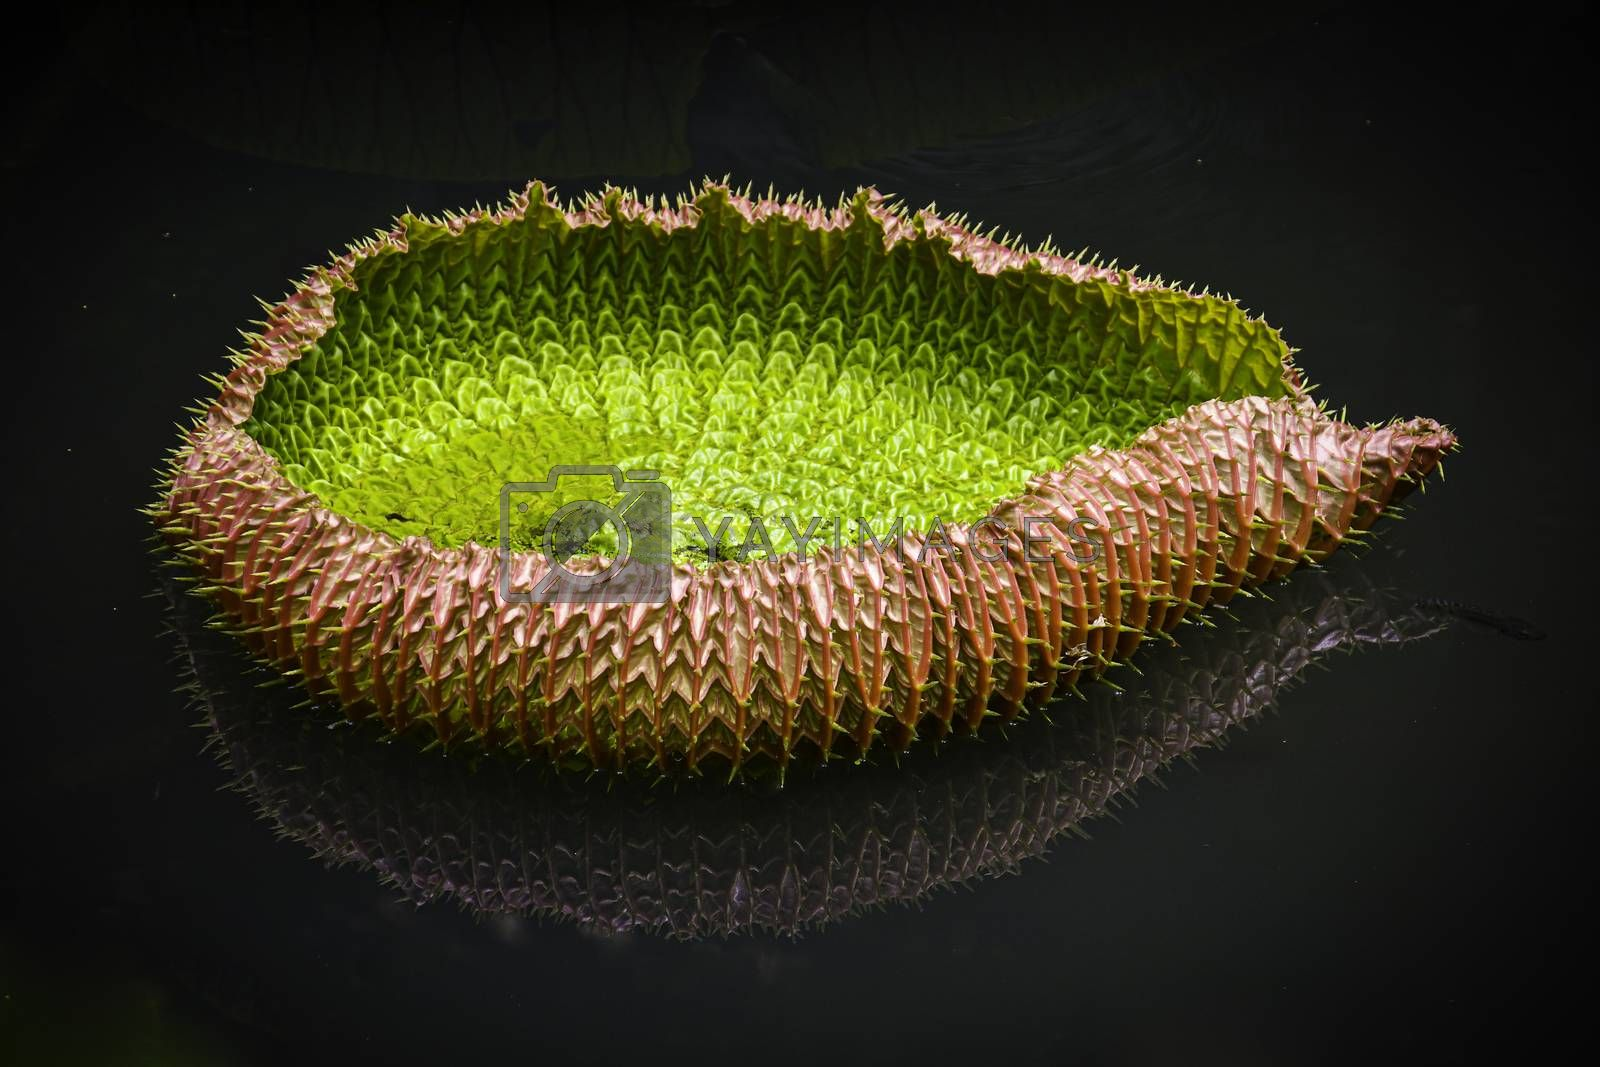 A side profile macro image of a young newly opened spiky lily leaf, floating on calm water, showing an inverted mirror image reflection.